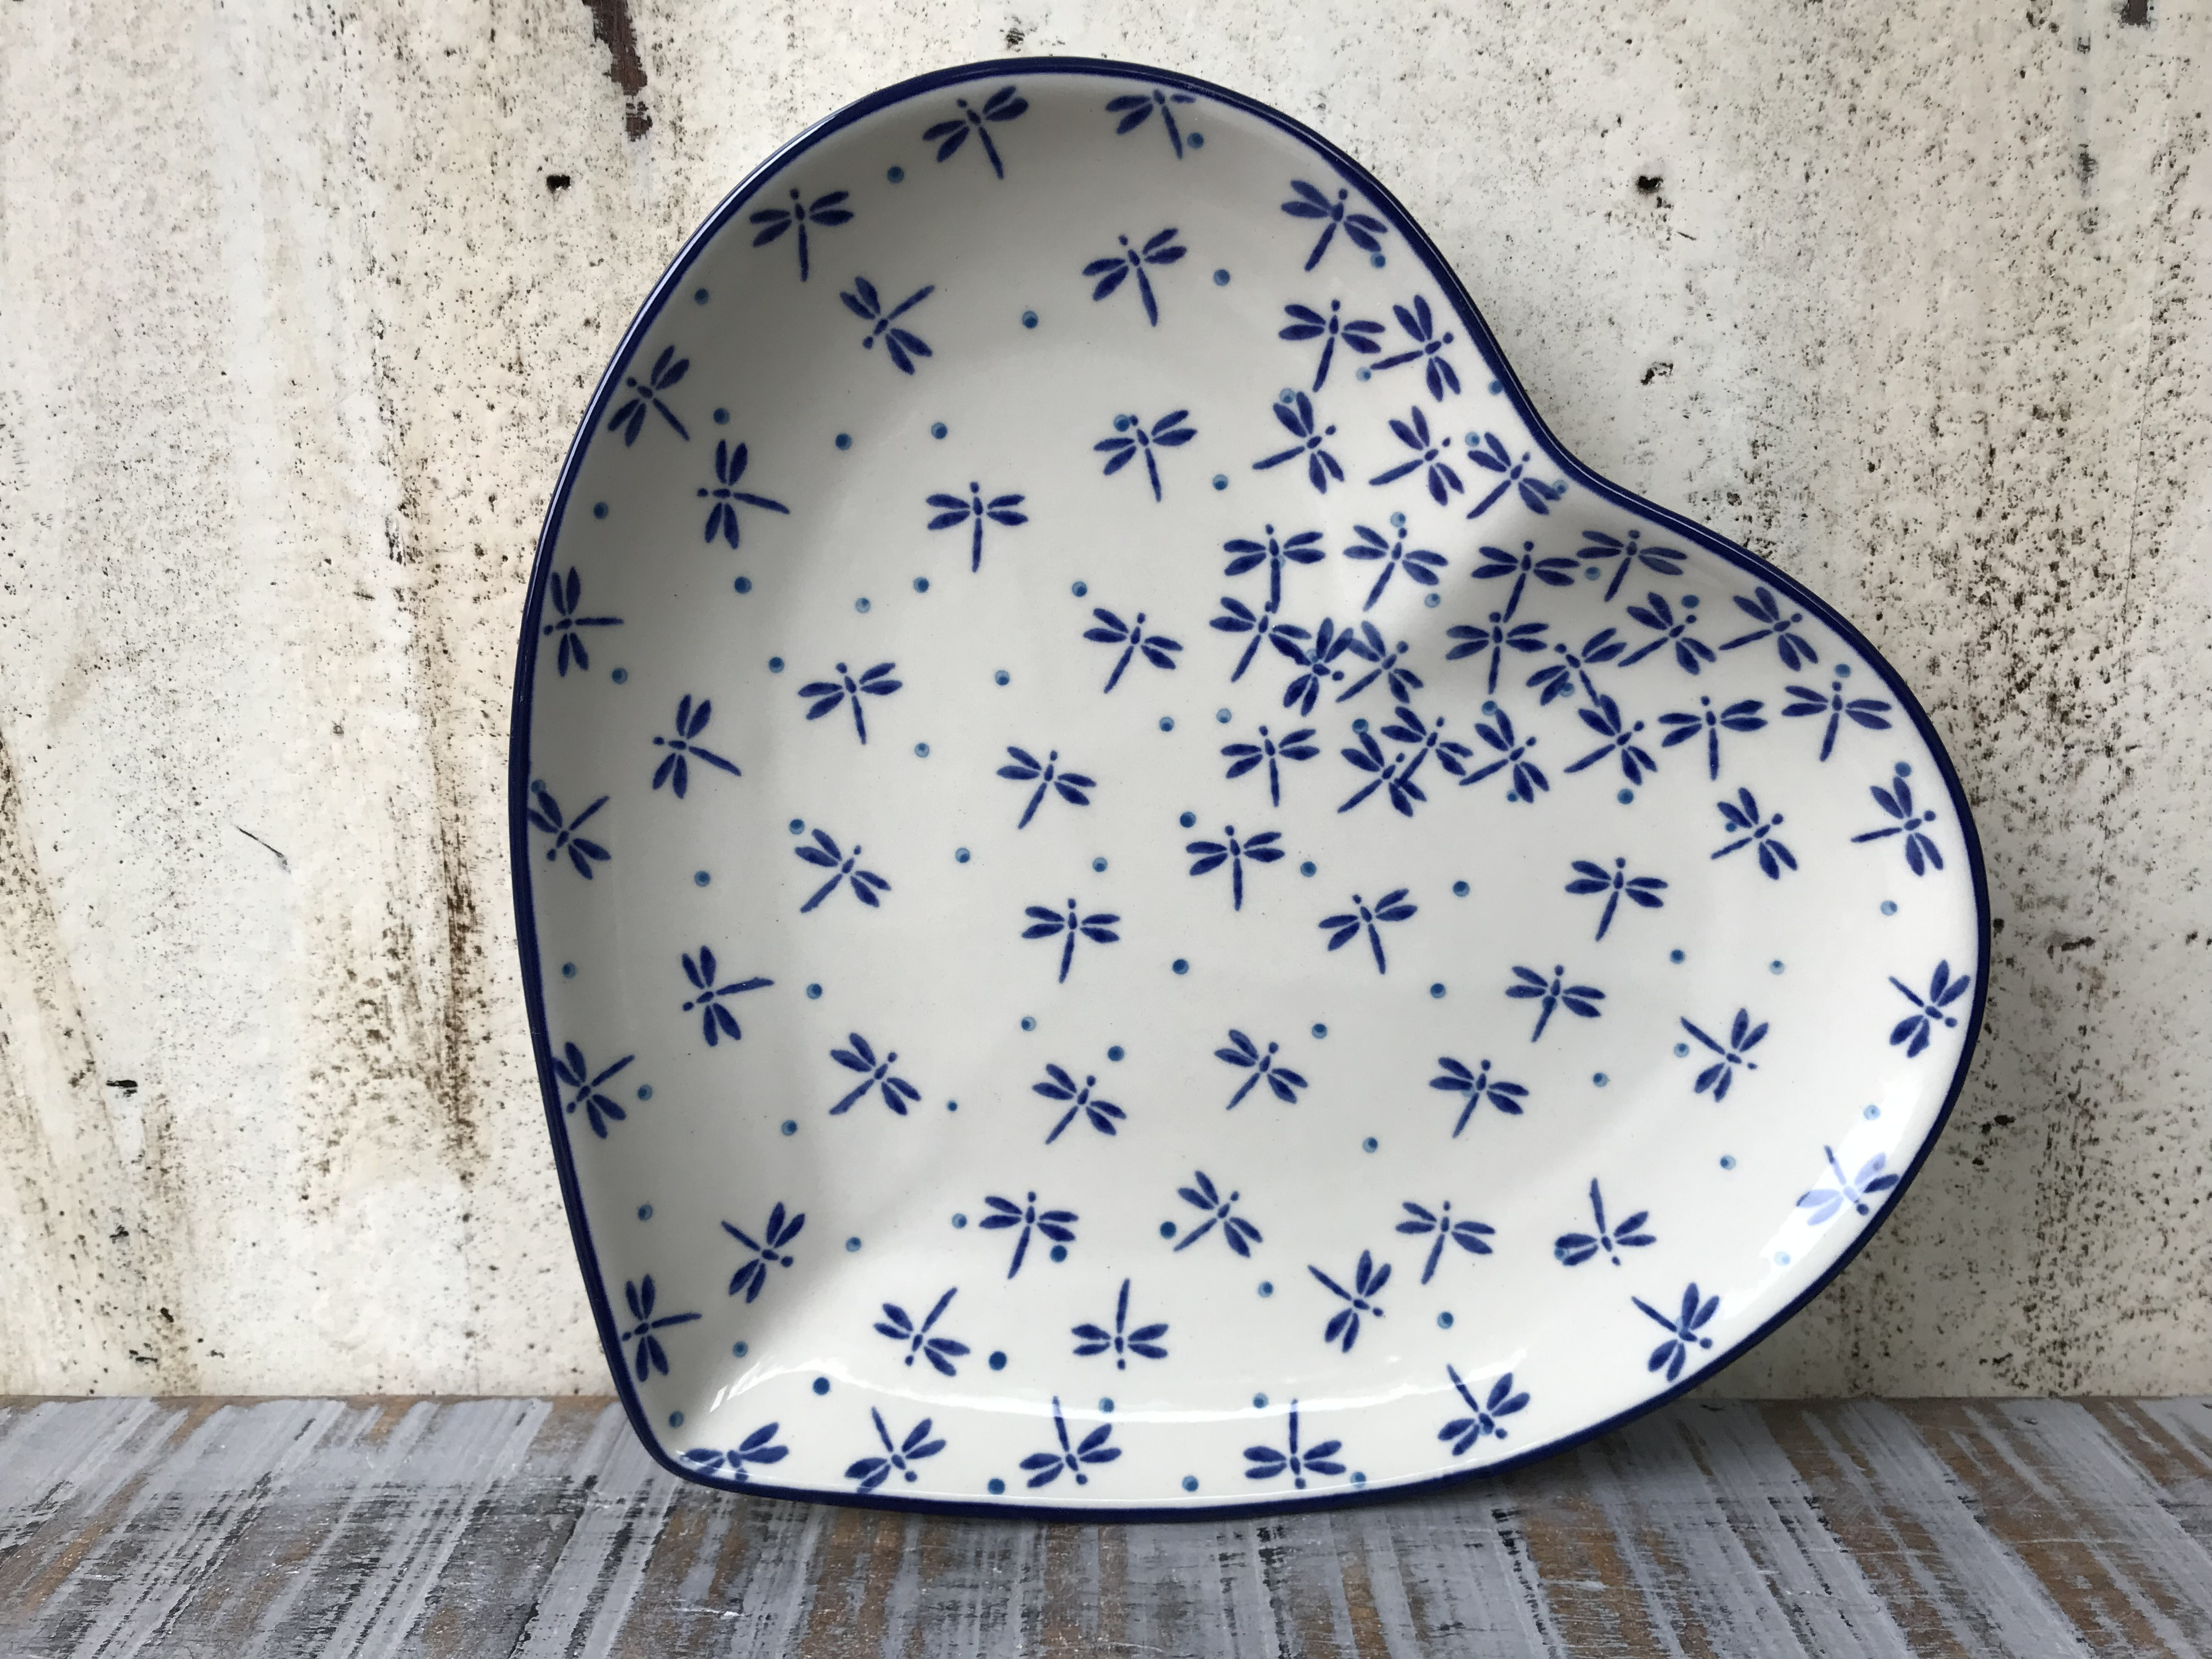 sorted-according-to-form-pottery-1-plates-heart-plate-23-x-22-cm